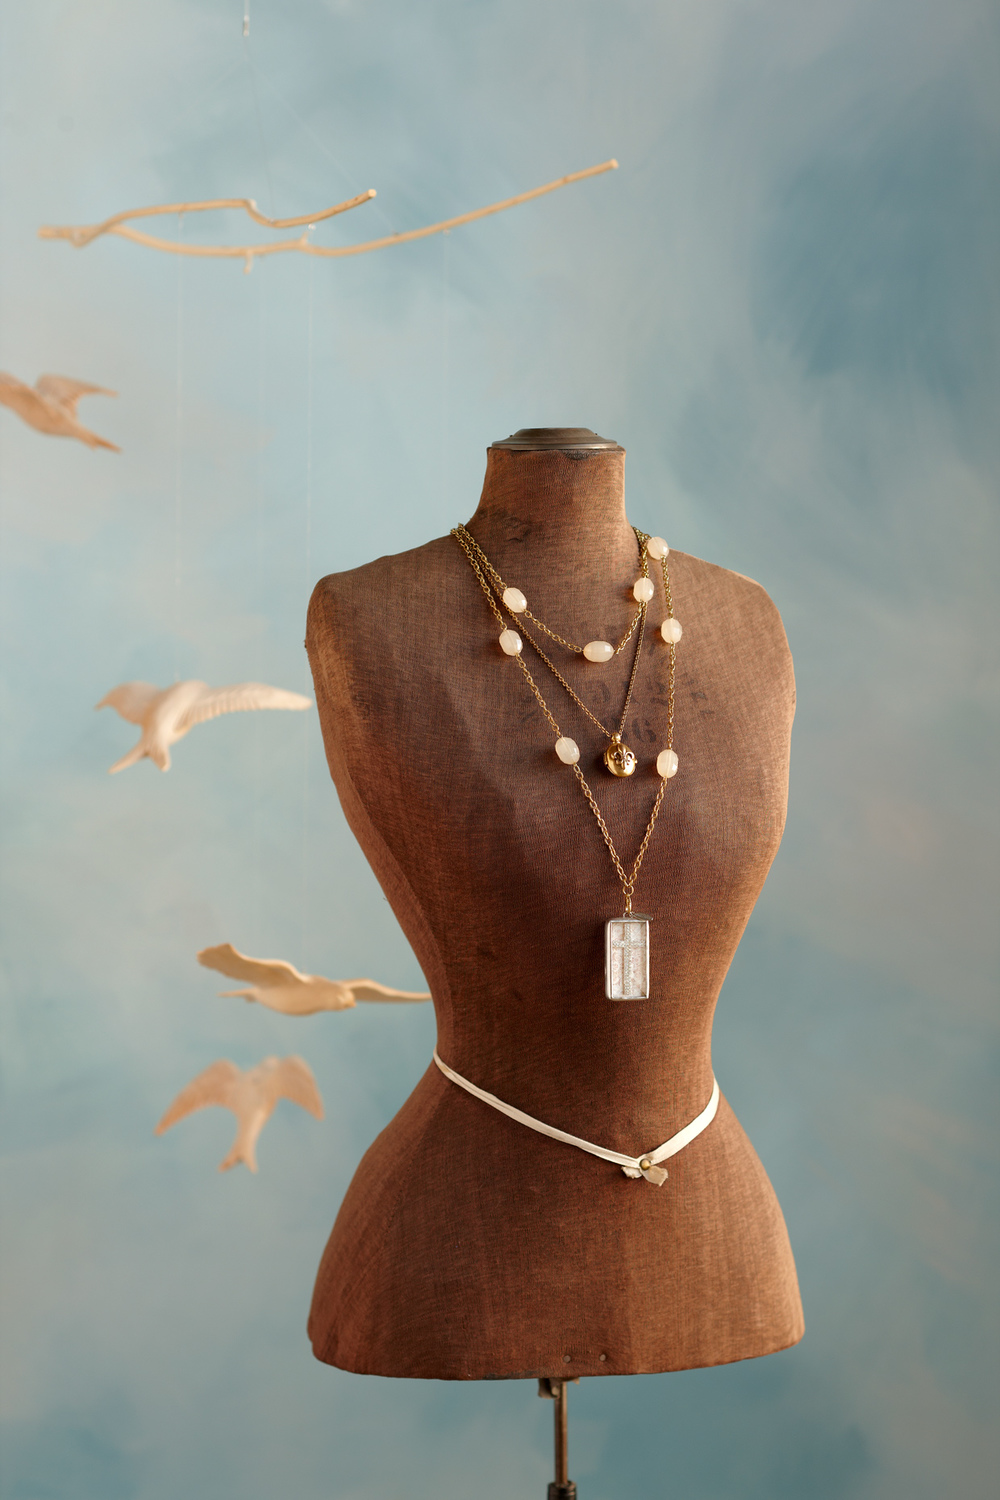 Product photography Jewelry Derek Israelsen Necklace Form Birds